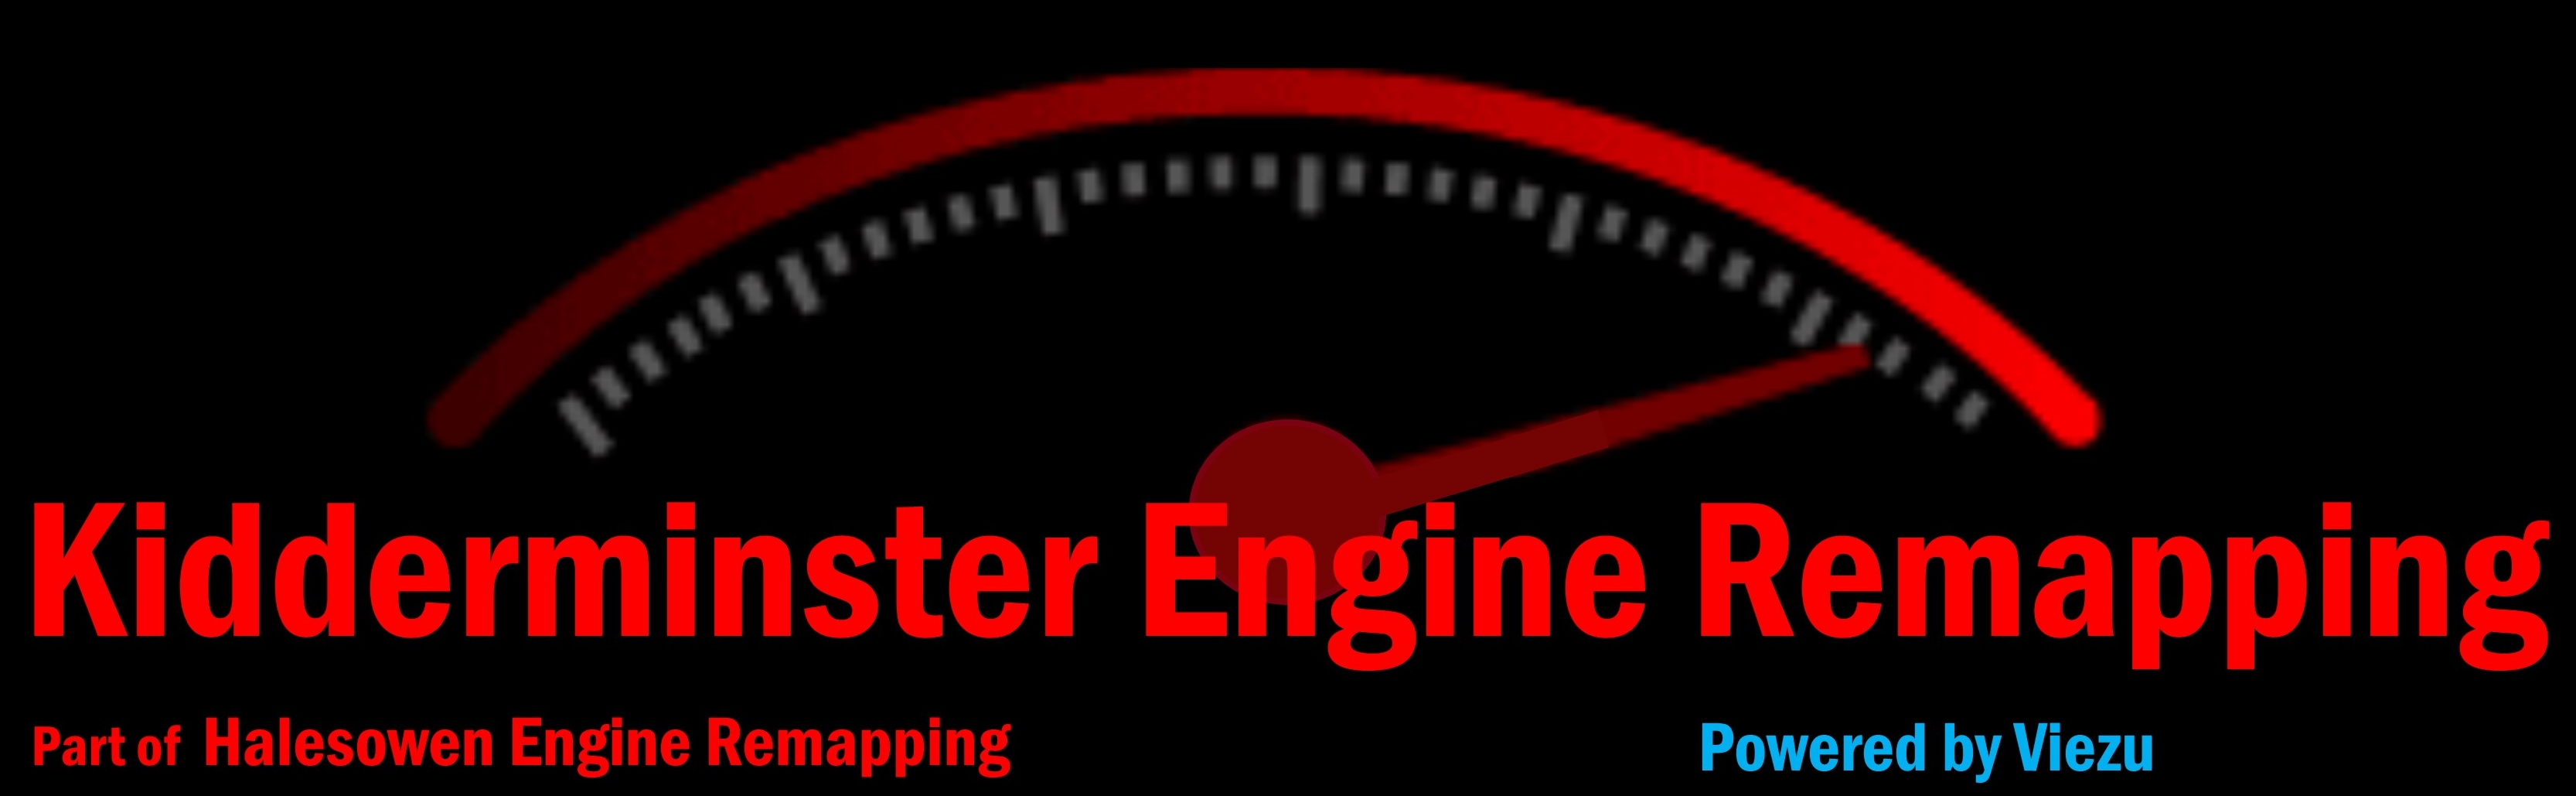 Kidderminster Engine Remapping - Expert car tuning in Kidderminster, Stourport and Surrounding areas.